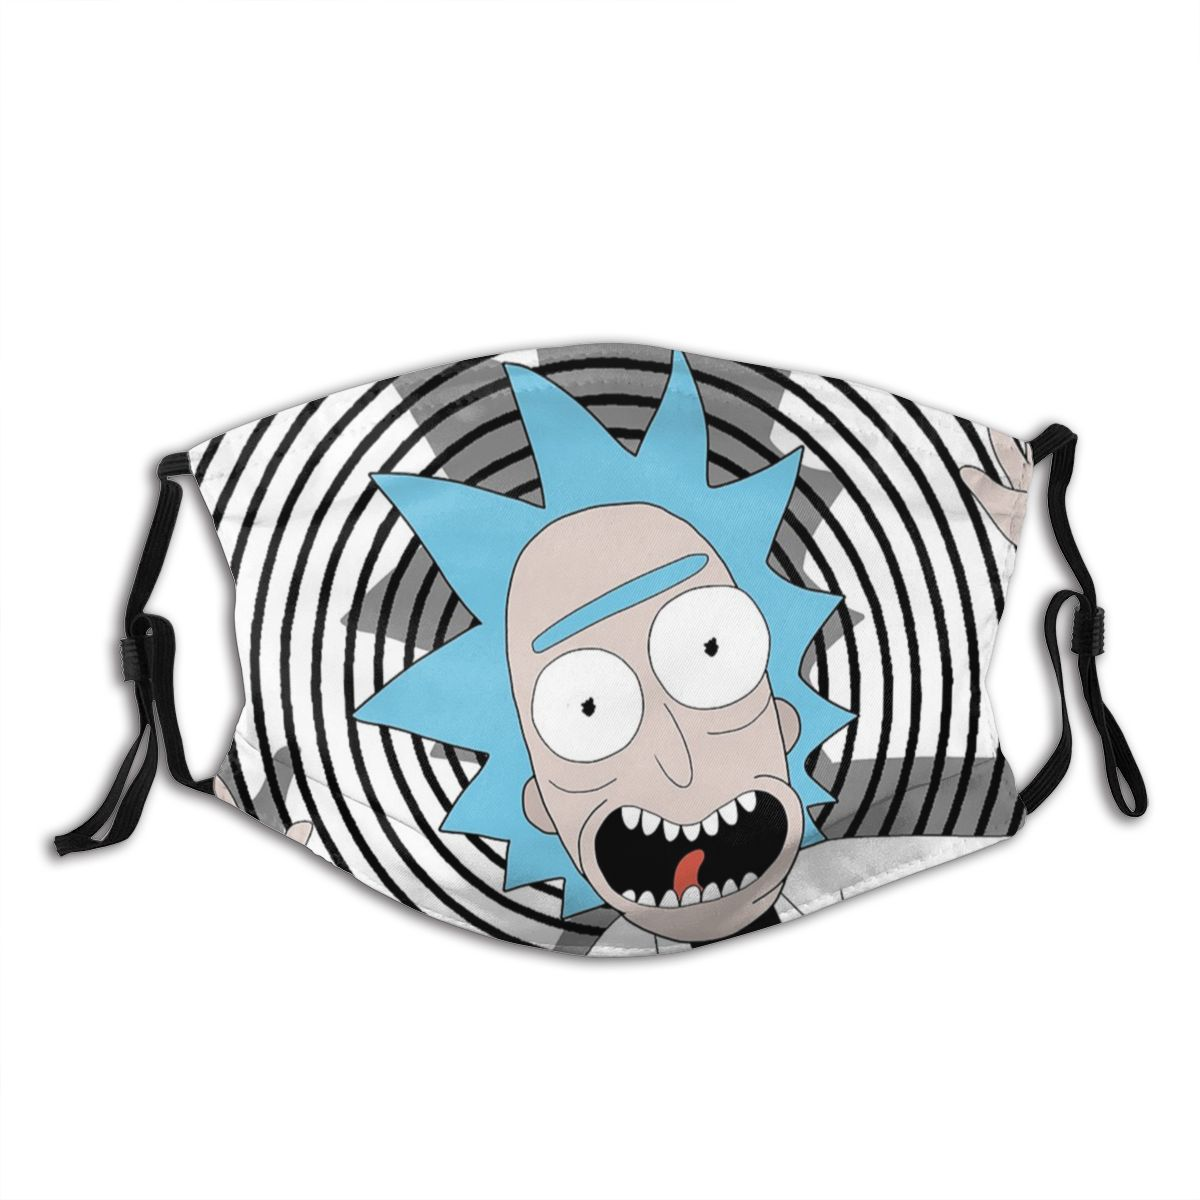 Rick Sanche Reusable Face Mask With Filter Rick And Morty Anti Bacterial Dustproof Mask Protection Cover Respirator Mouth Muffle